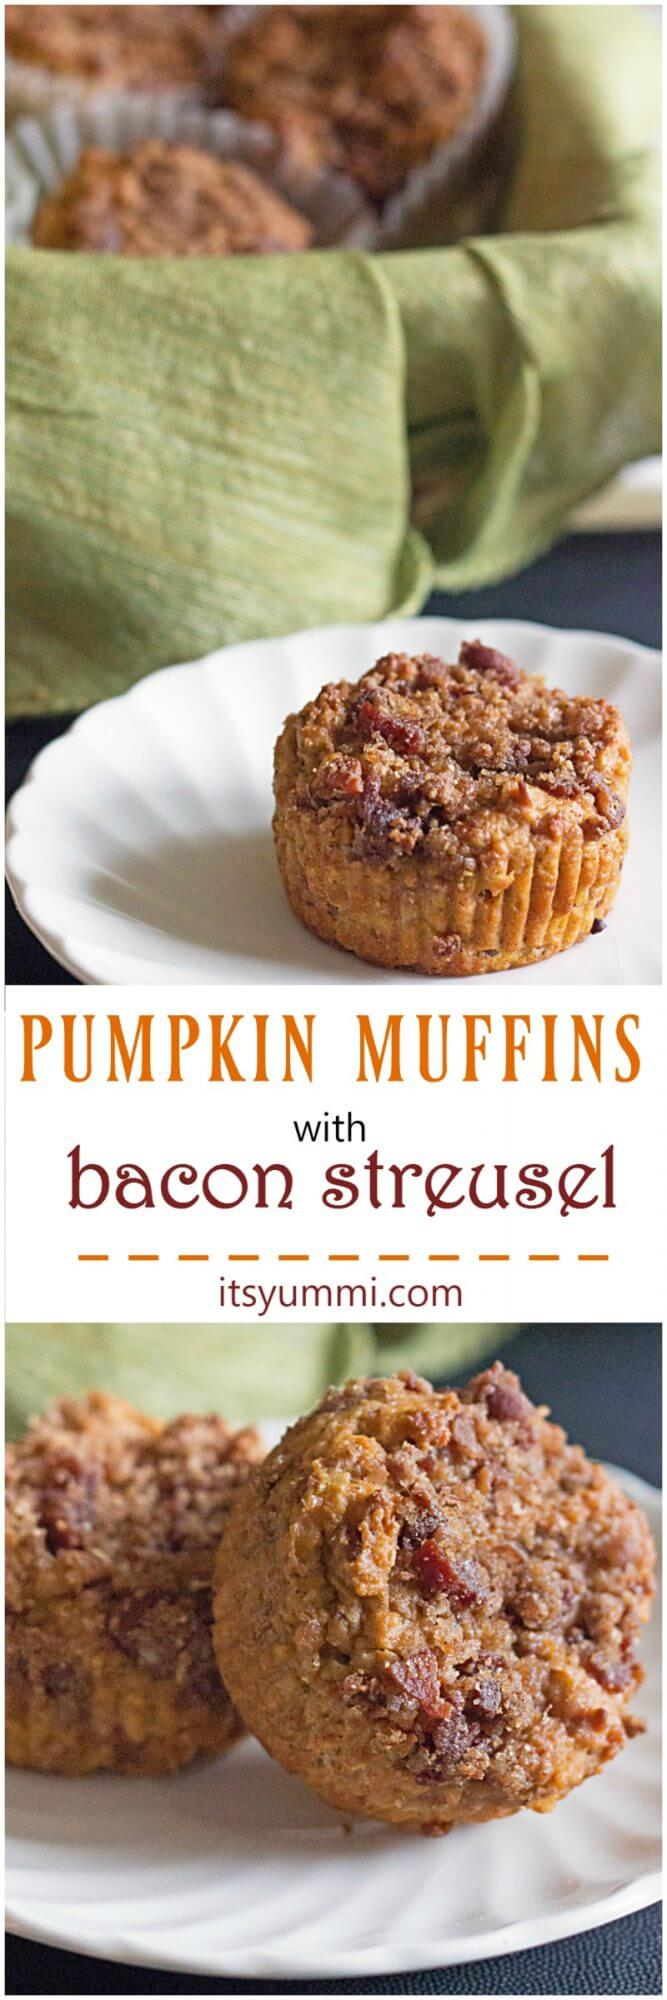 titled photo collage (and shown) Pumpkin Muffins with Bacon Streusel